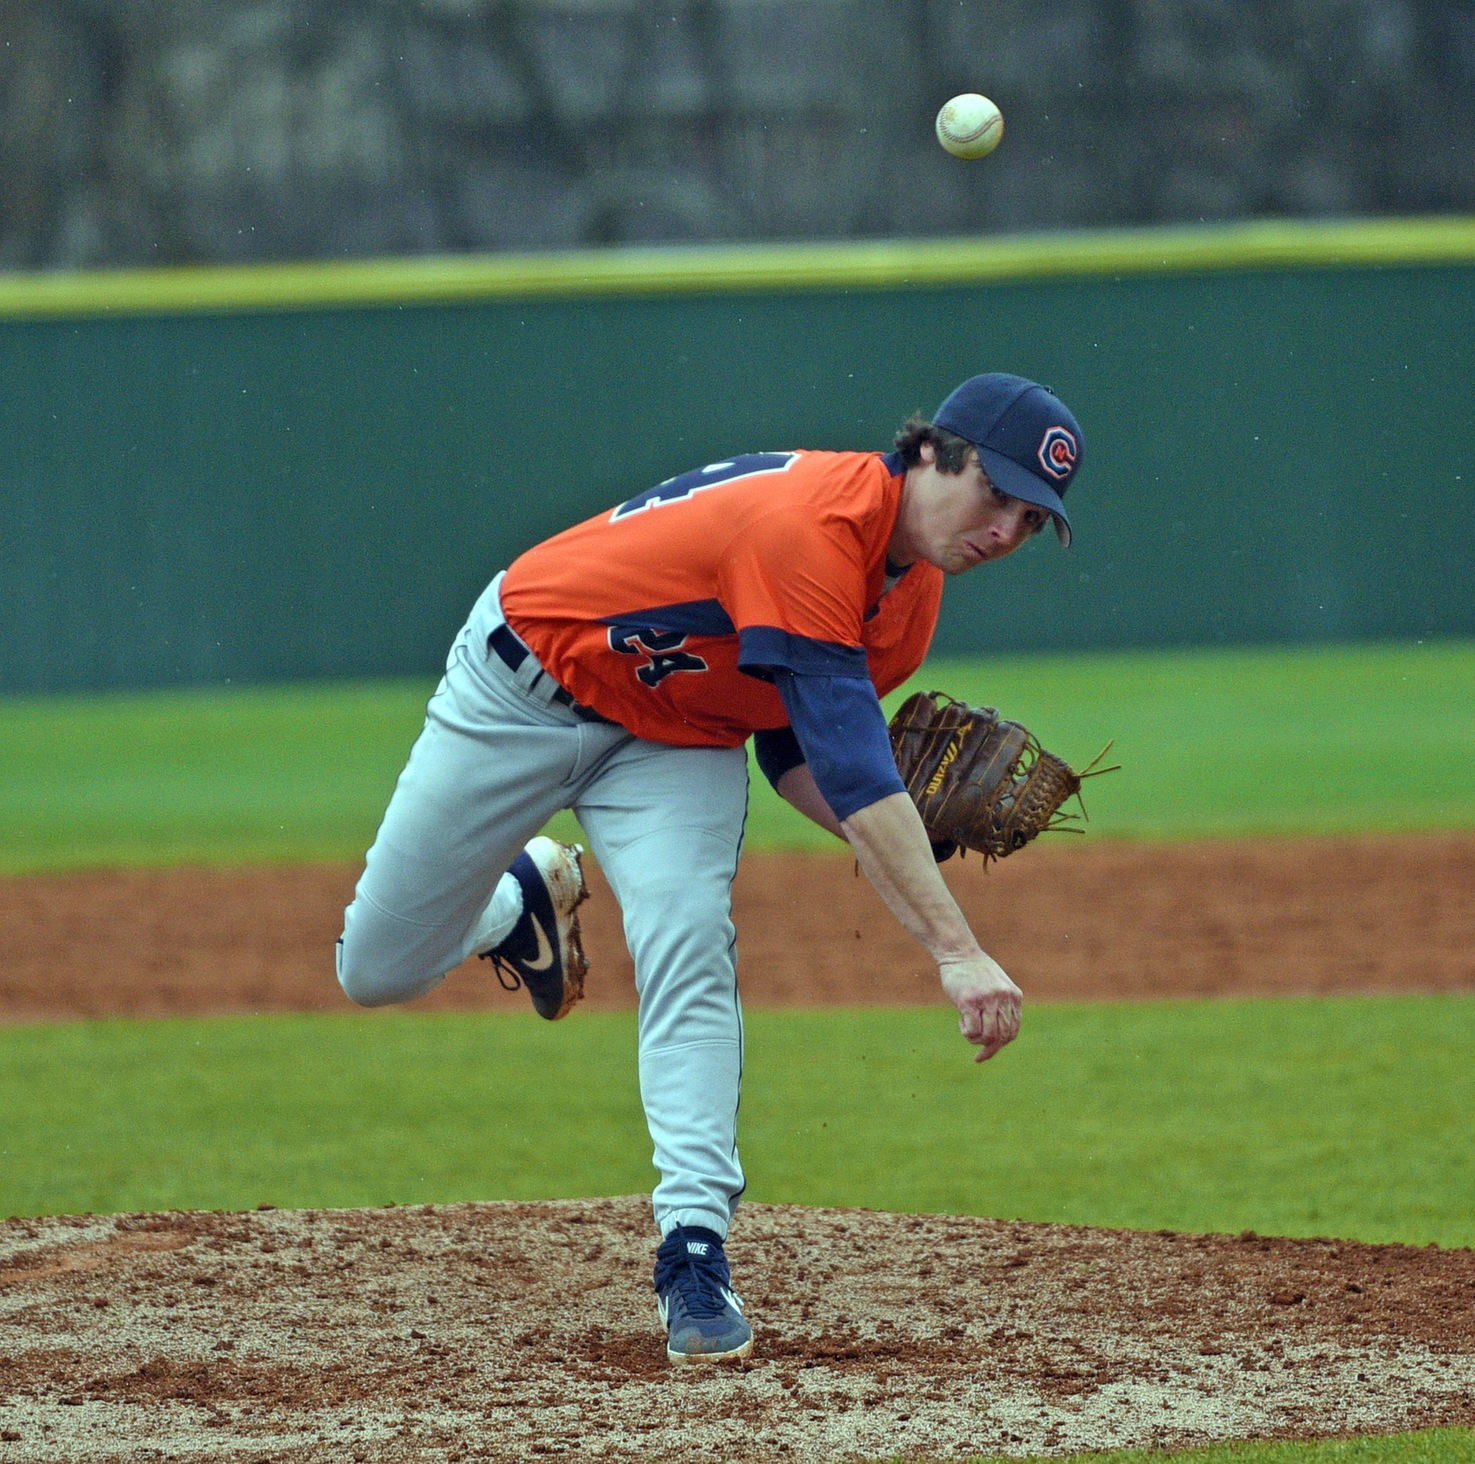 Cogburn's shutout start sends No. 22 C-N over Virginia-Wise